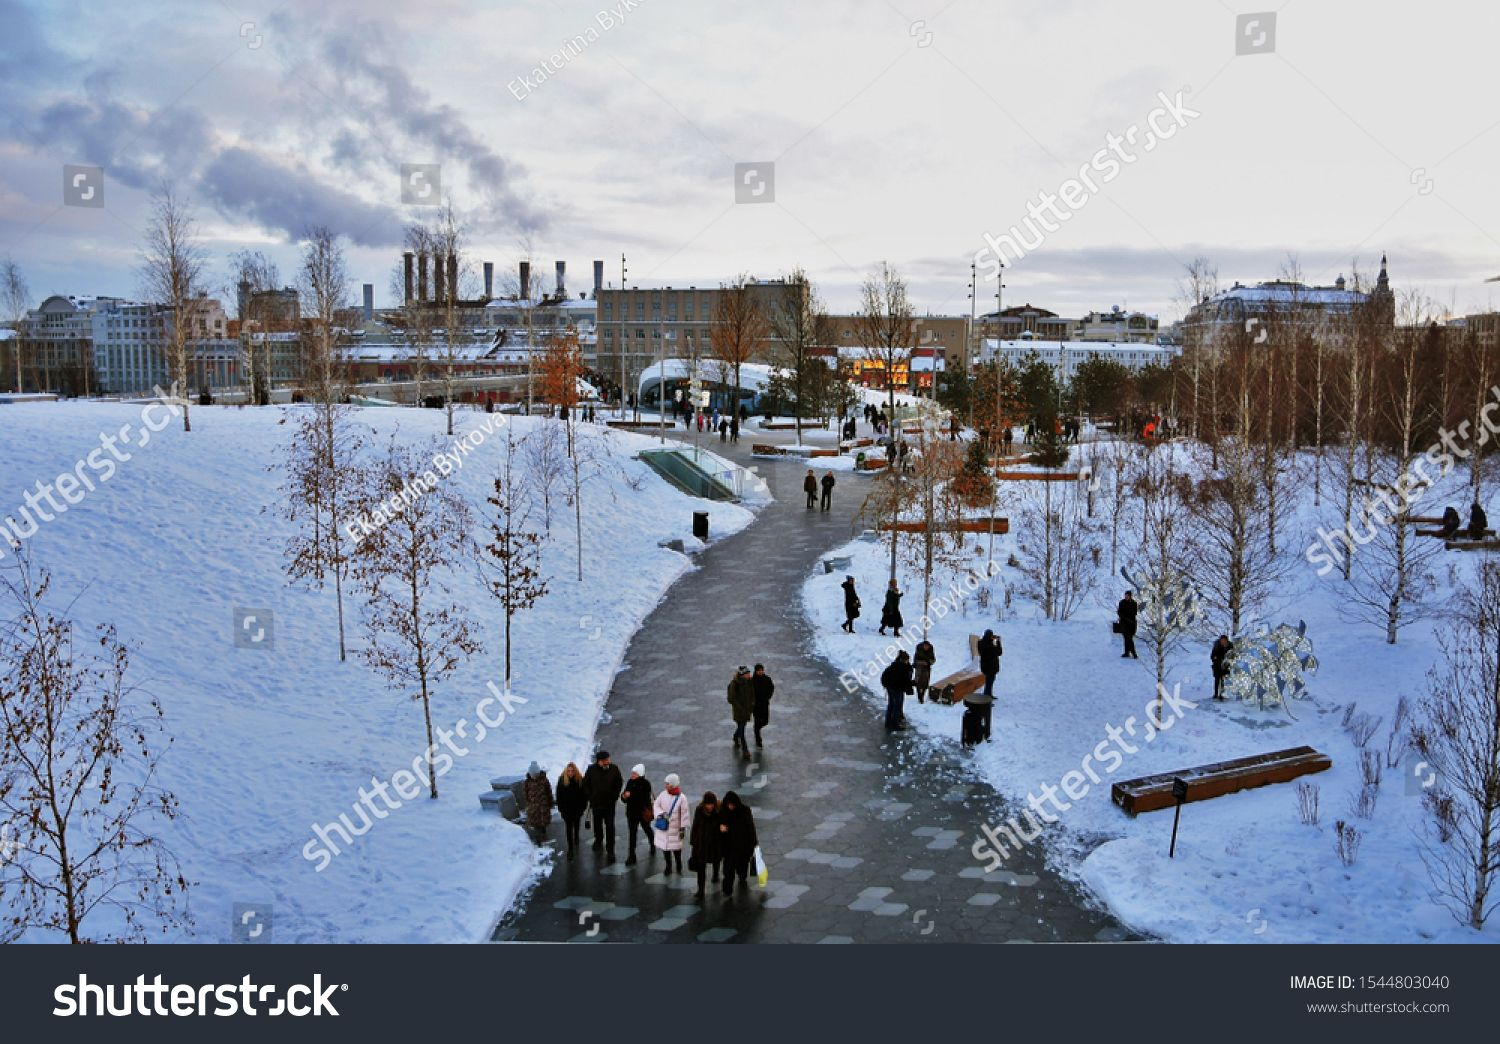 Moscow January 13 2019 View Of Zaryadye Park New Landmark In Moscow City Historic Center Open In 2017 Color Winter Photo Sponsored Winter Photos Stock Photos Photo Editing